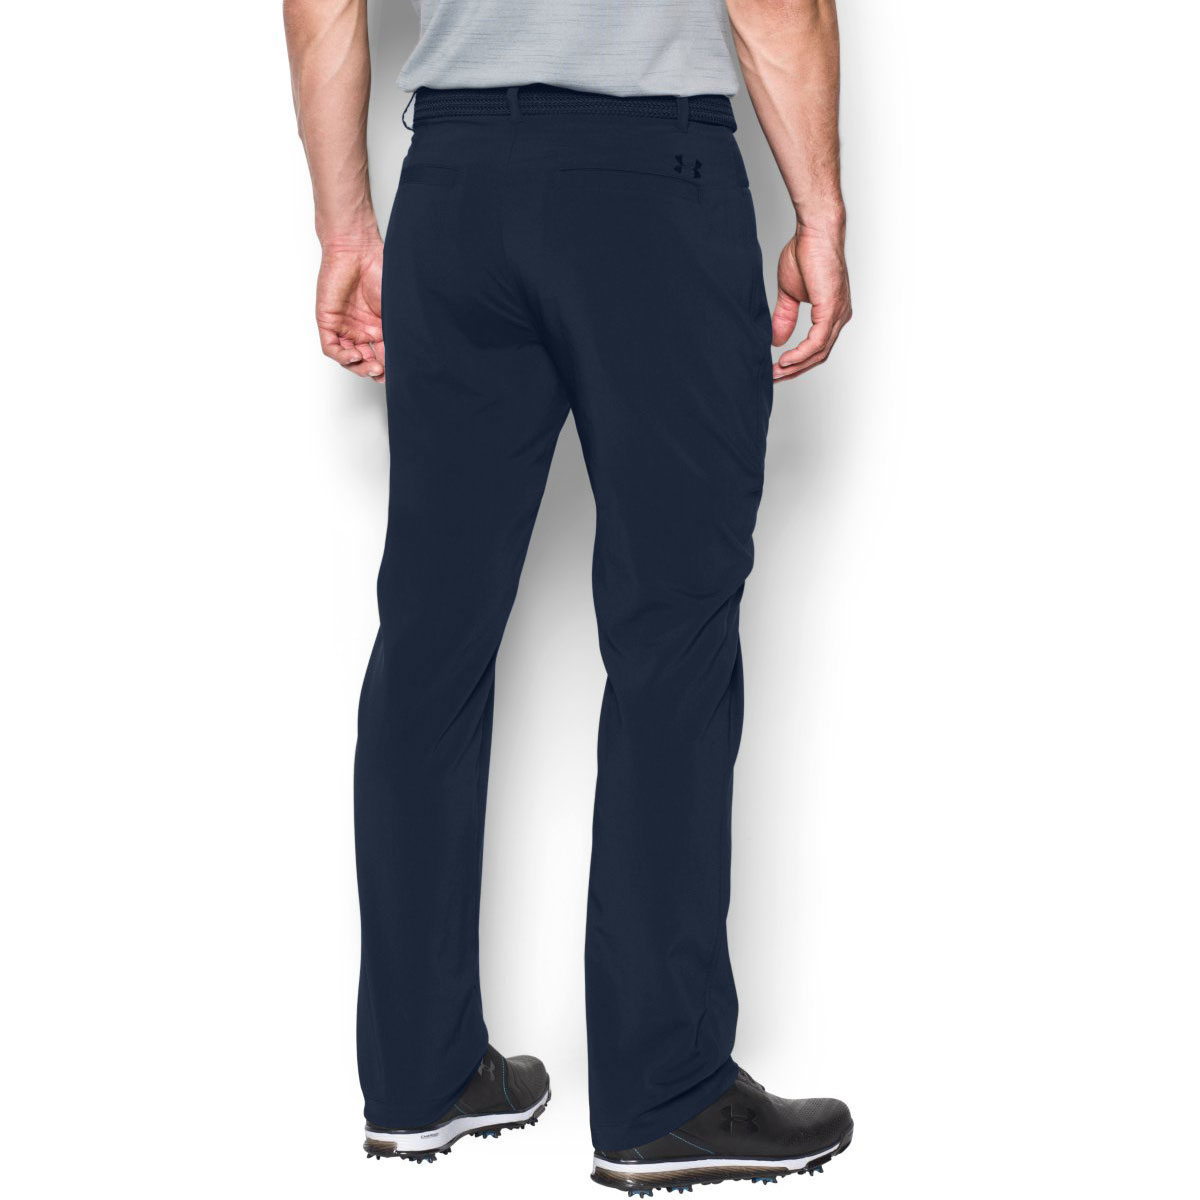 Under-Armour-Mens-Tech-Pant-Soft-Stretch-Golf-Trousers-31-OFF-RRP thumbnail 3